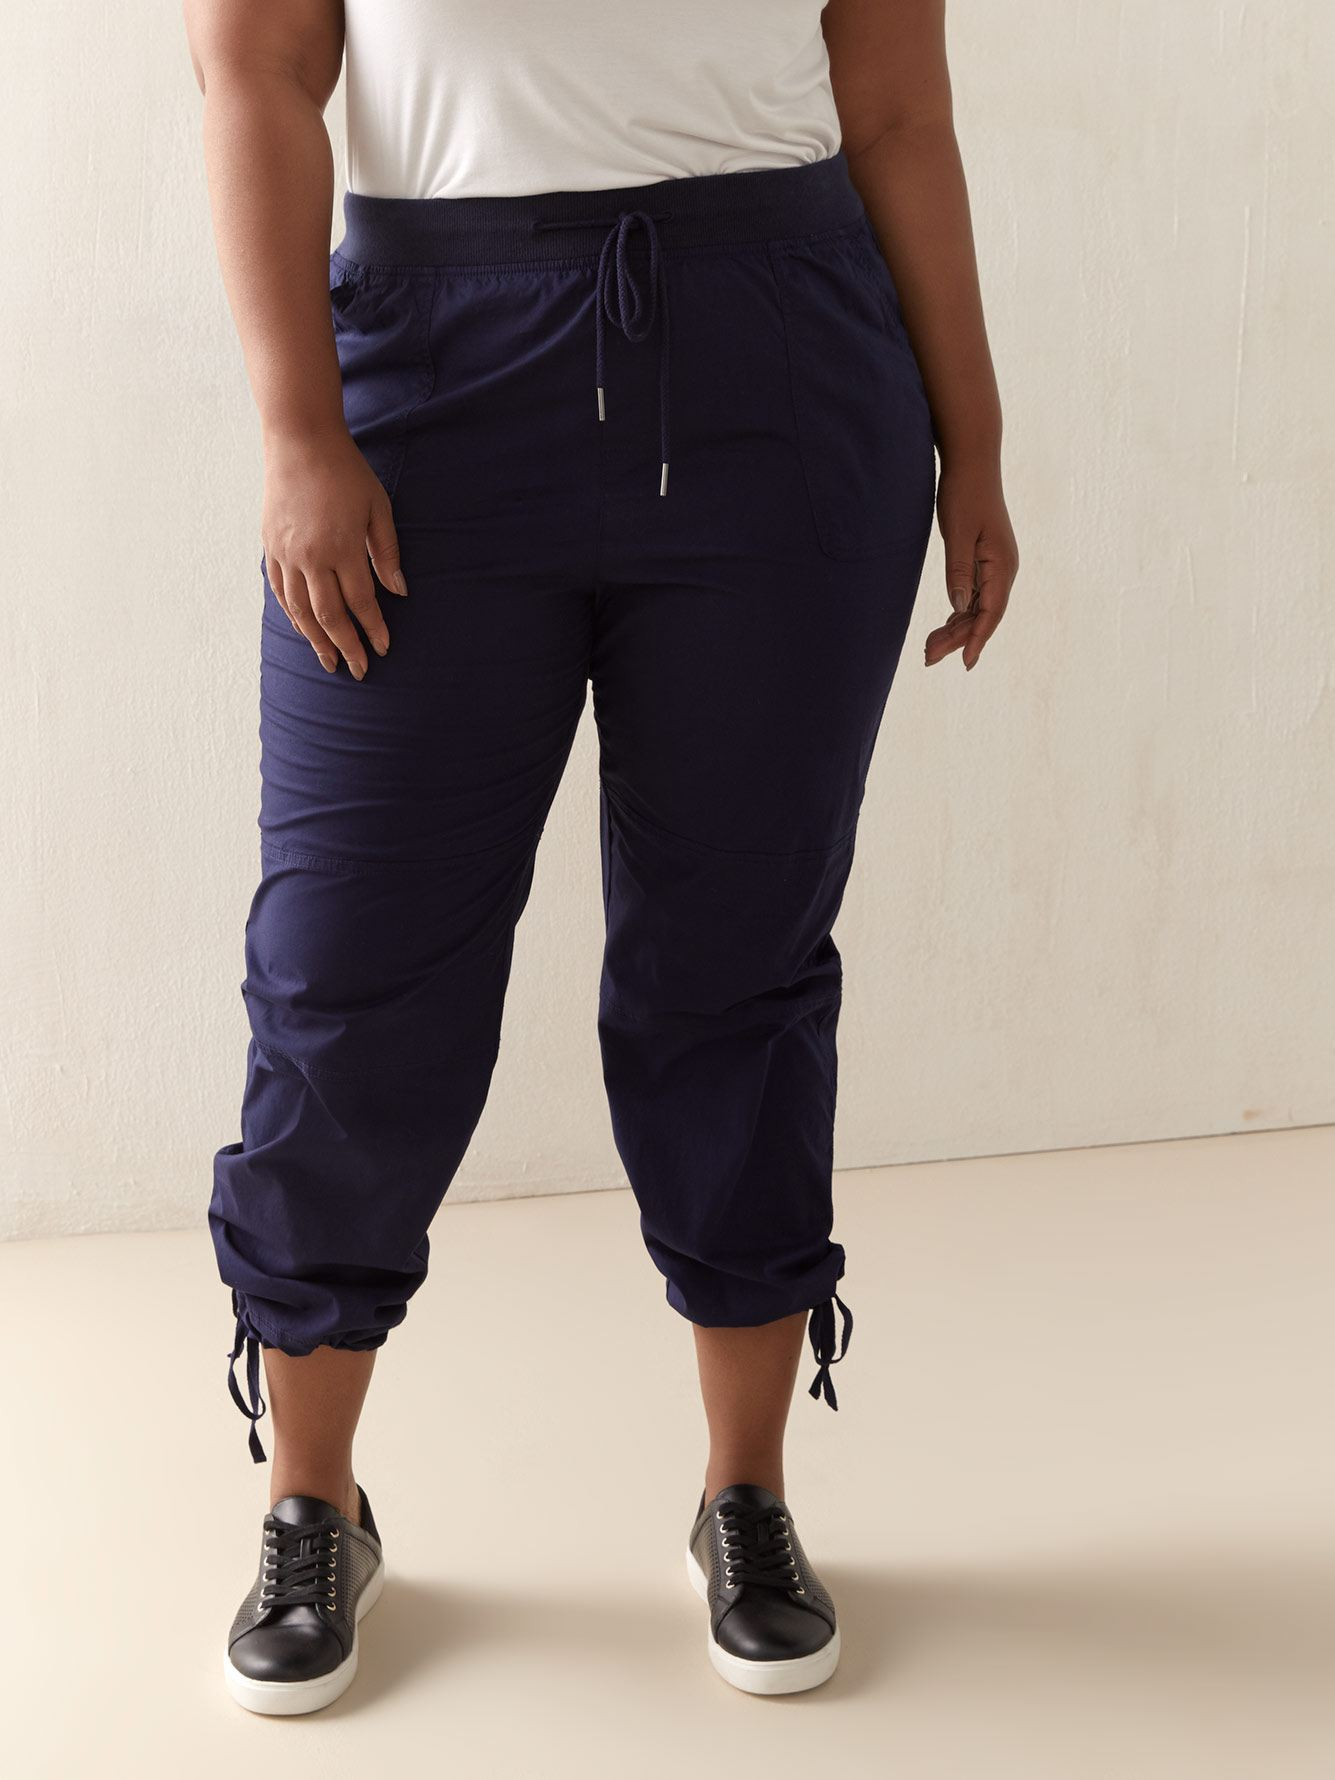 Cotton Cargo Pants with Front Pockets - In Every Story